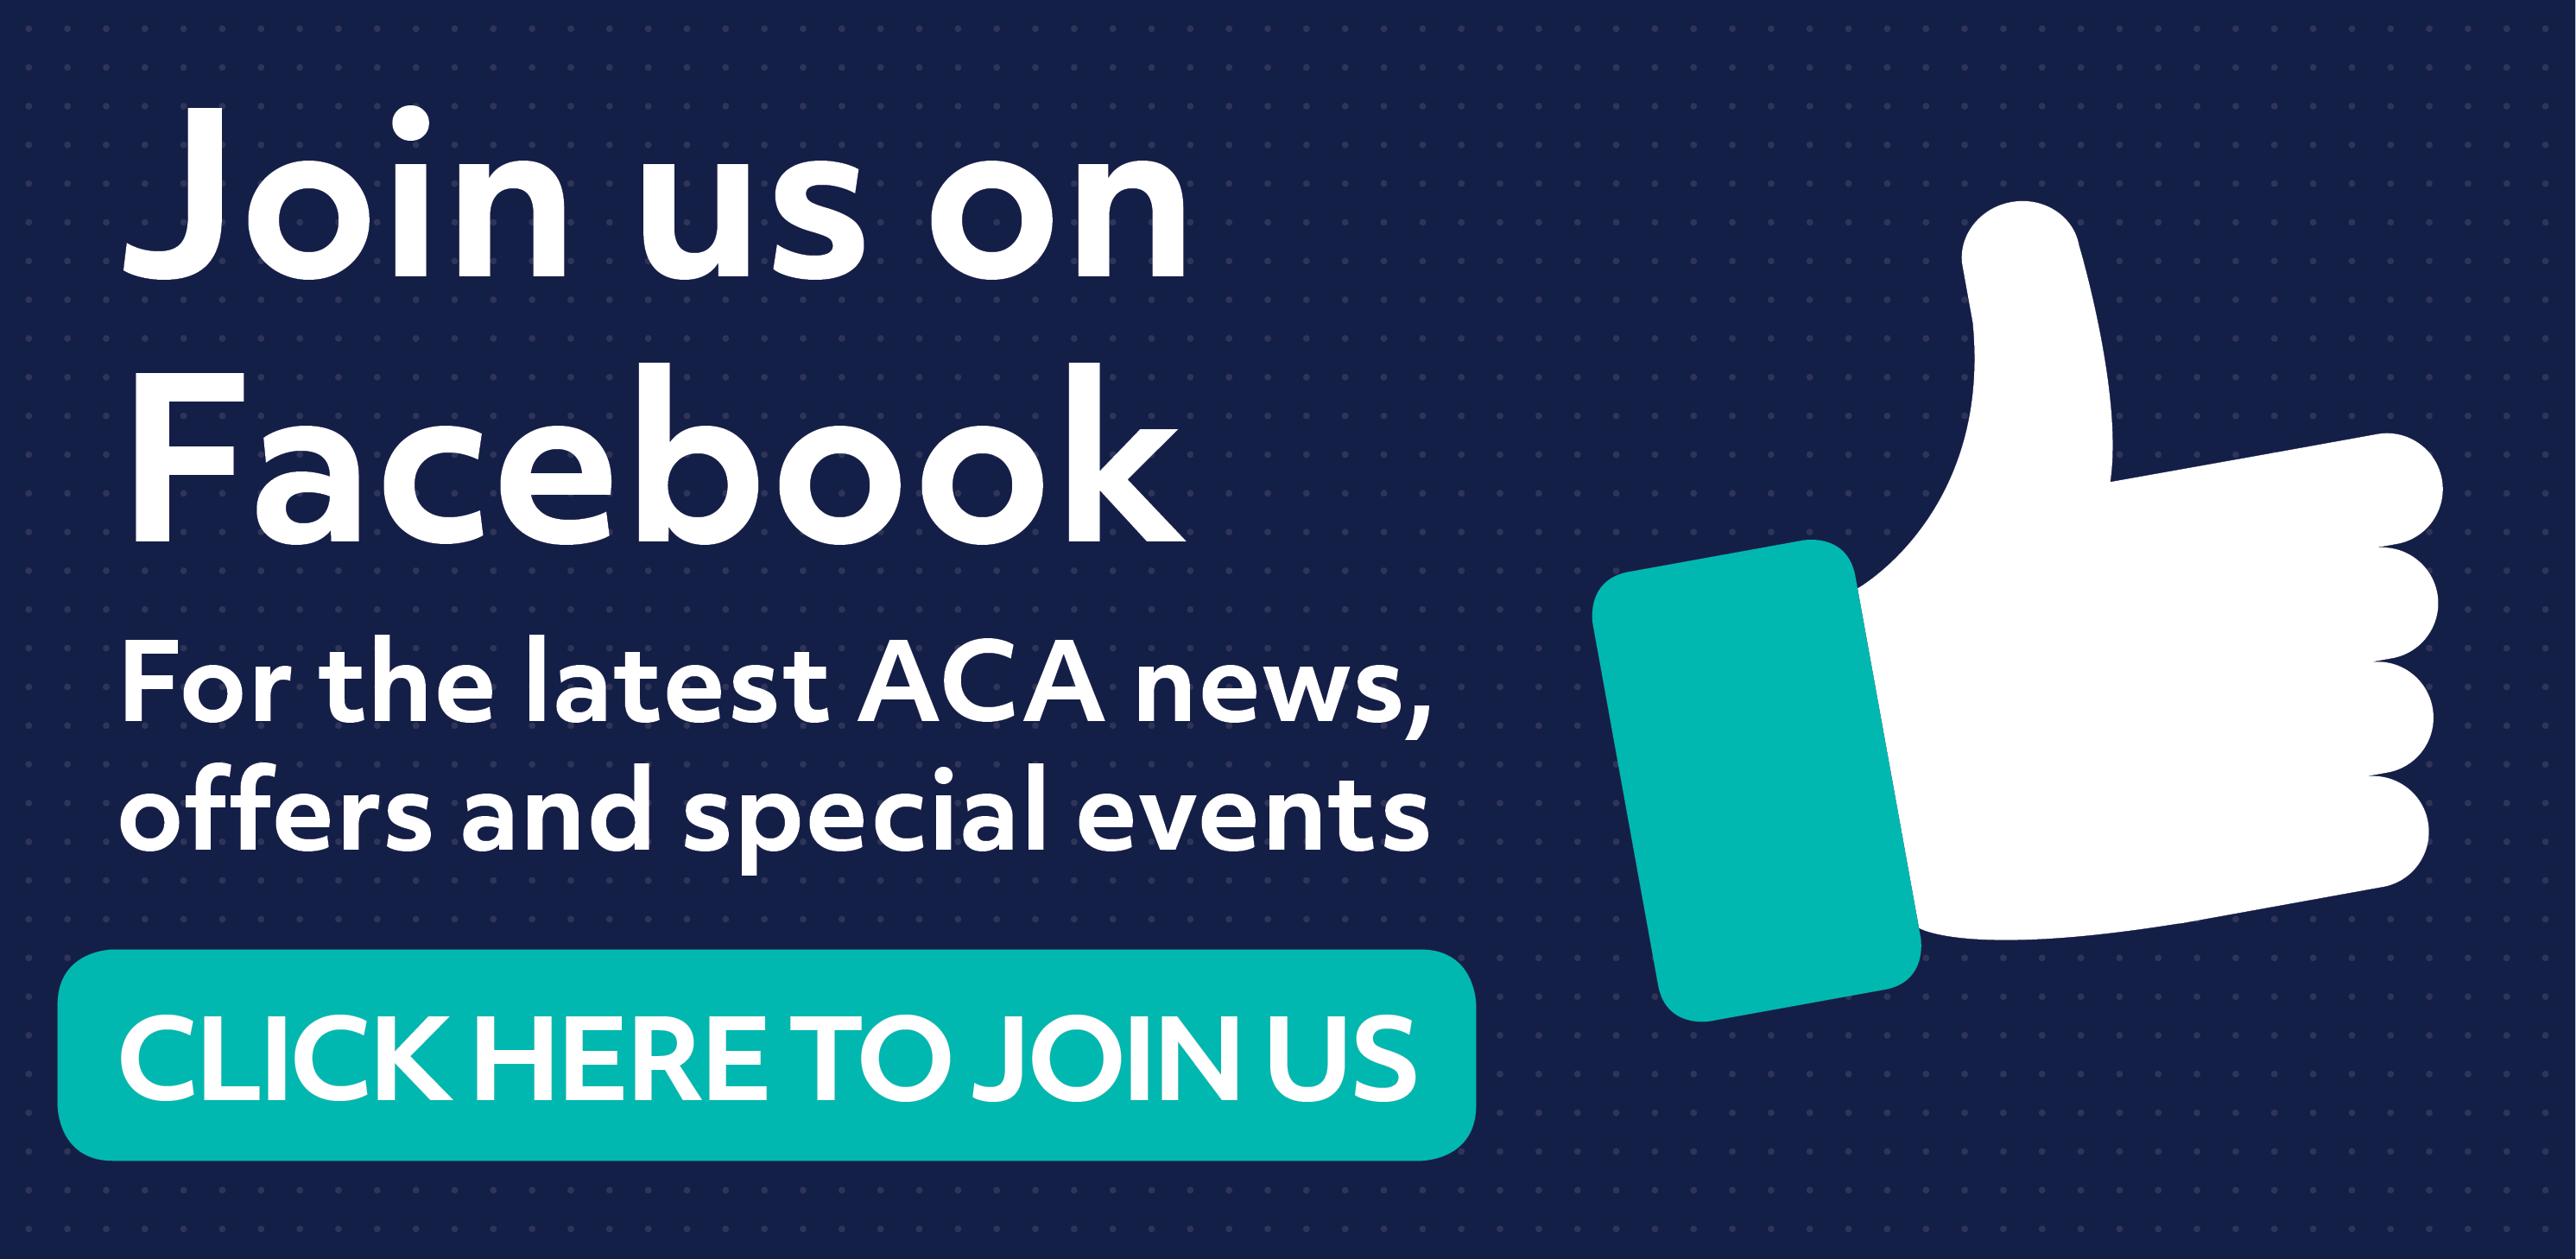 ACA Join Facebook